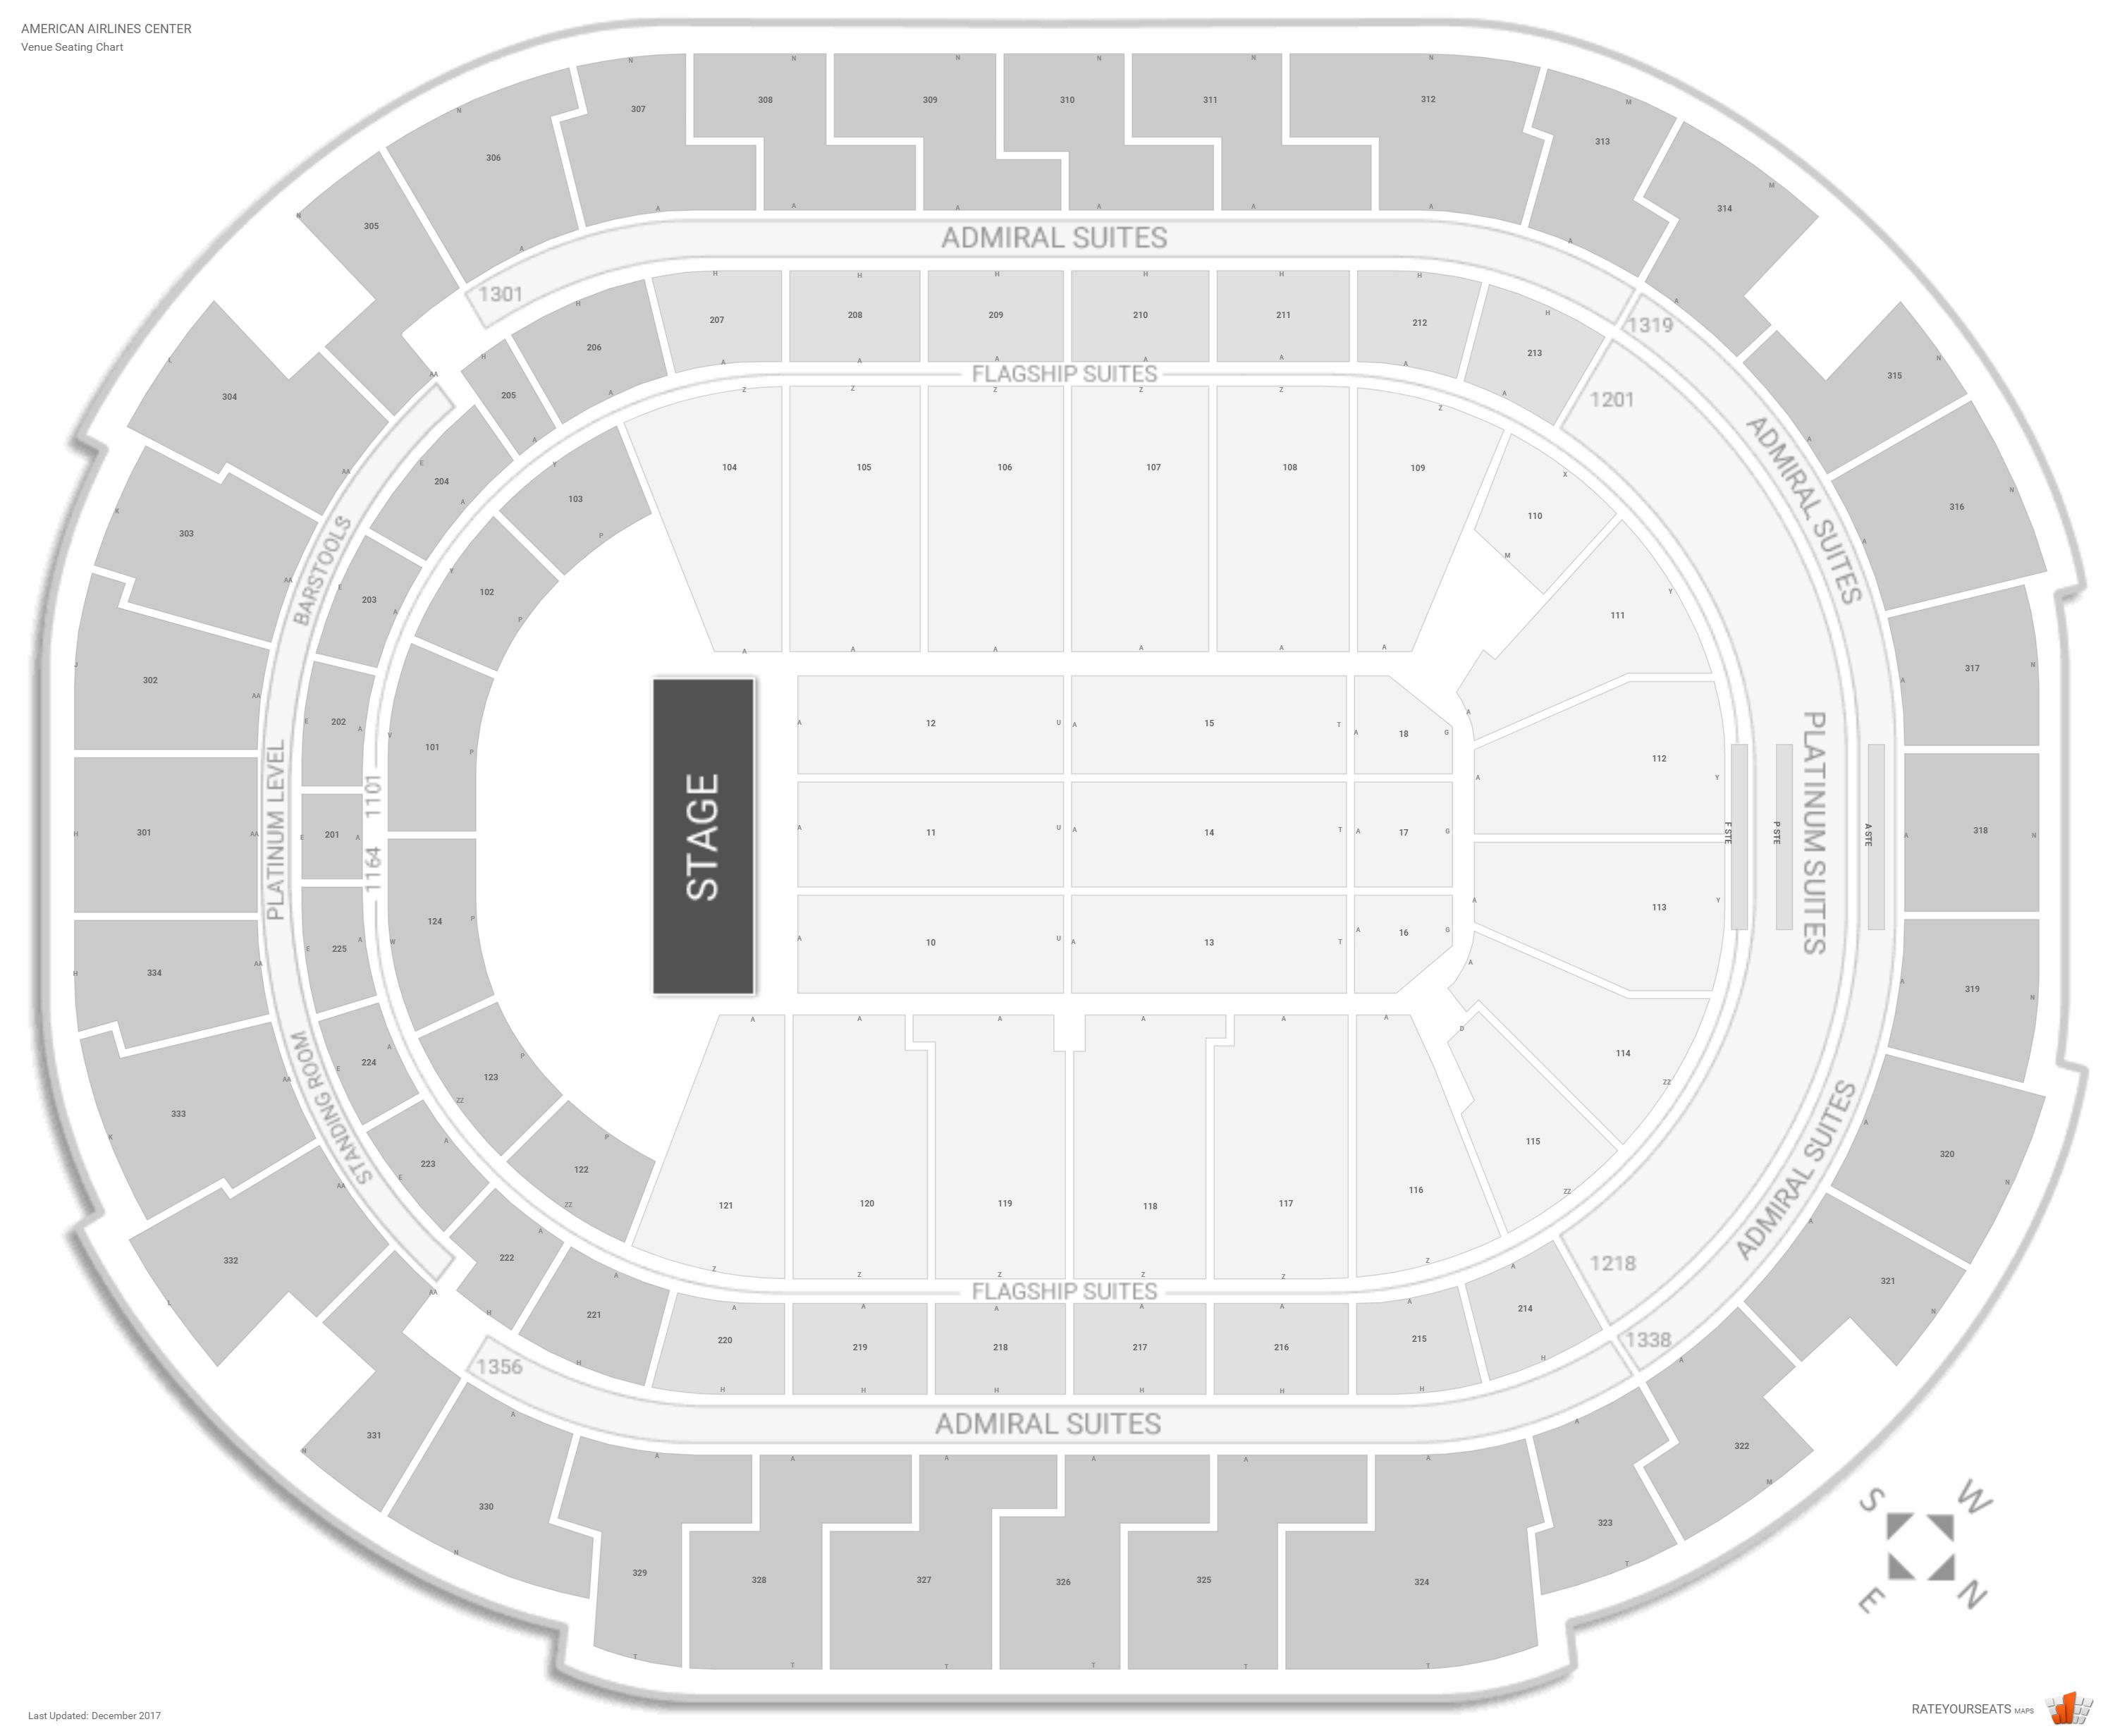 American Airlines Center Concert Seating Guide